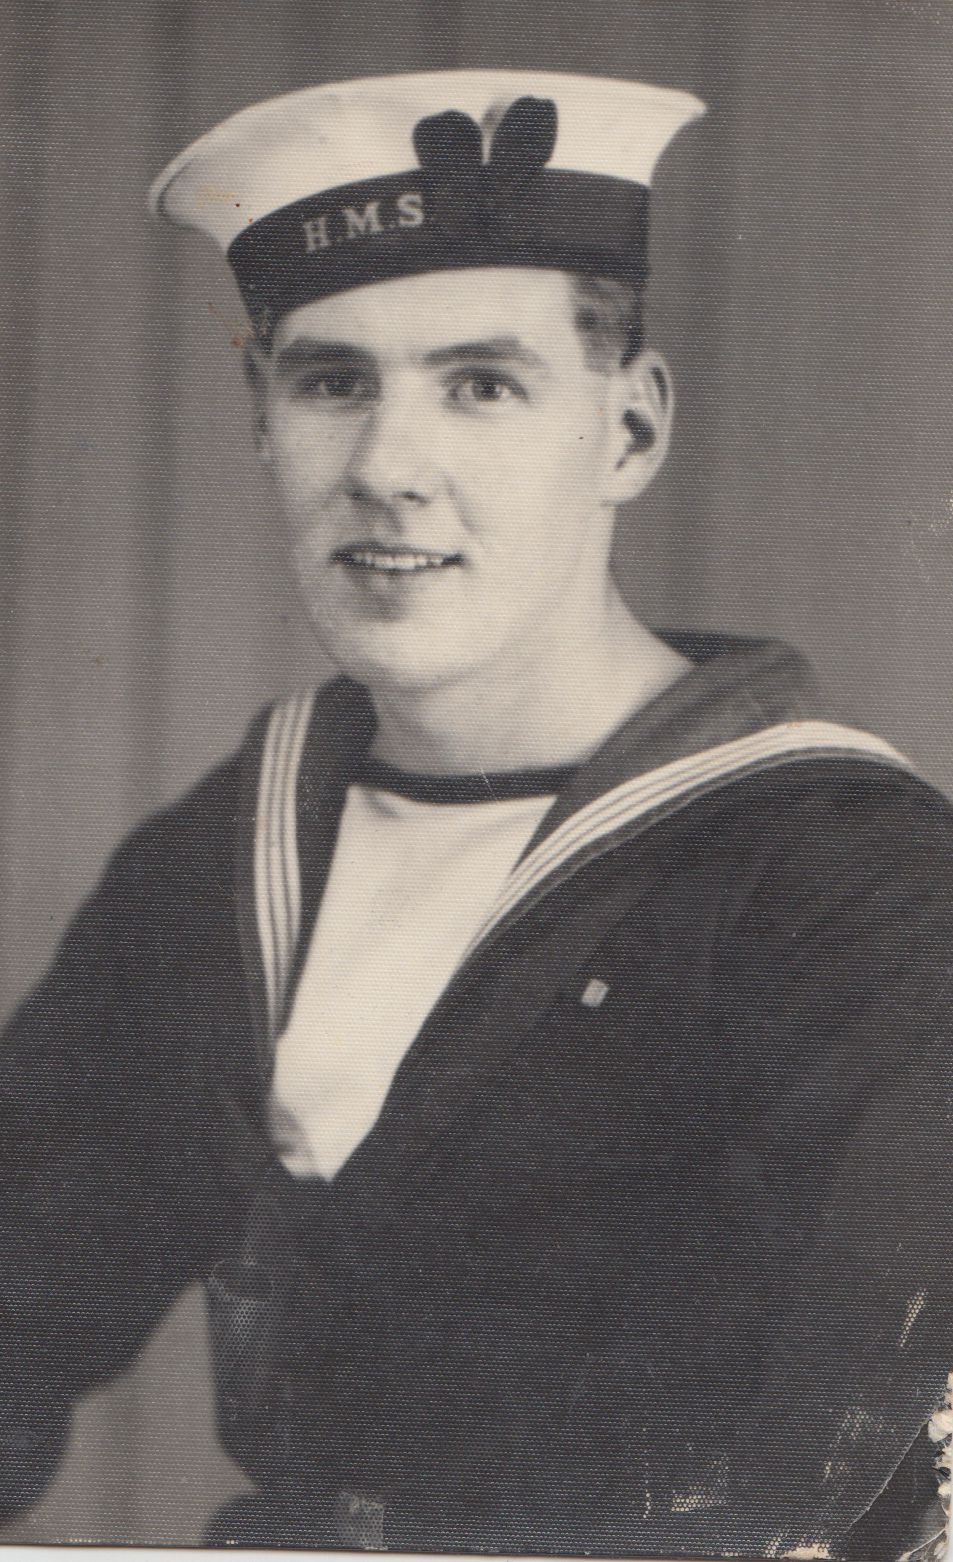 harry_hunt_navy_0001.jpg